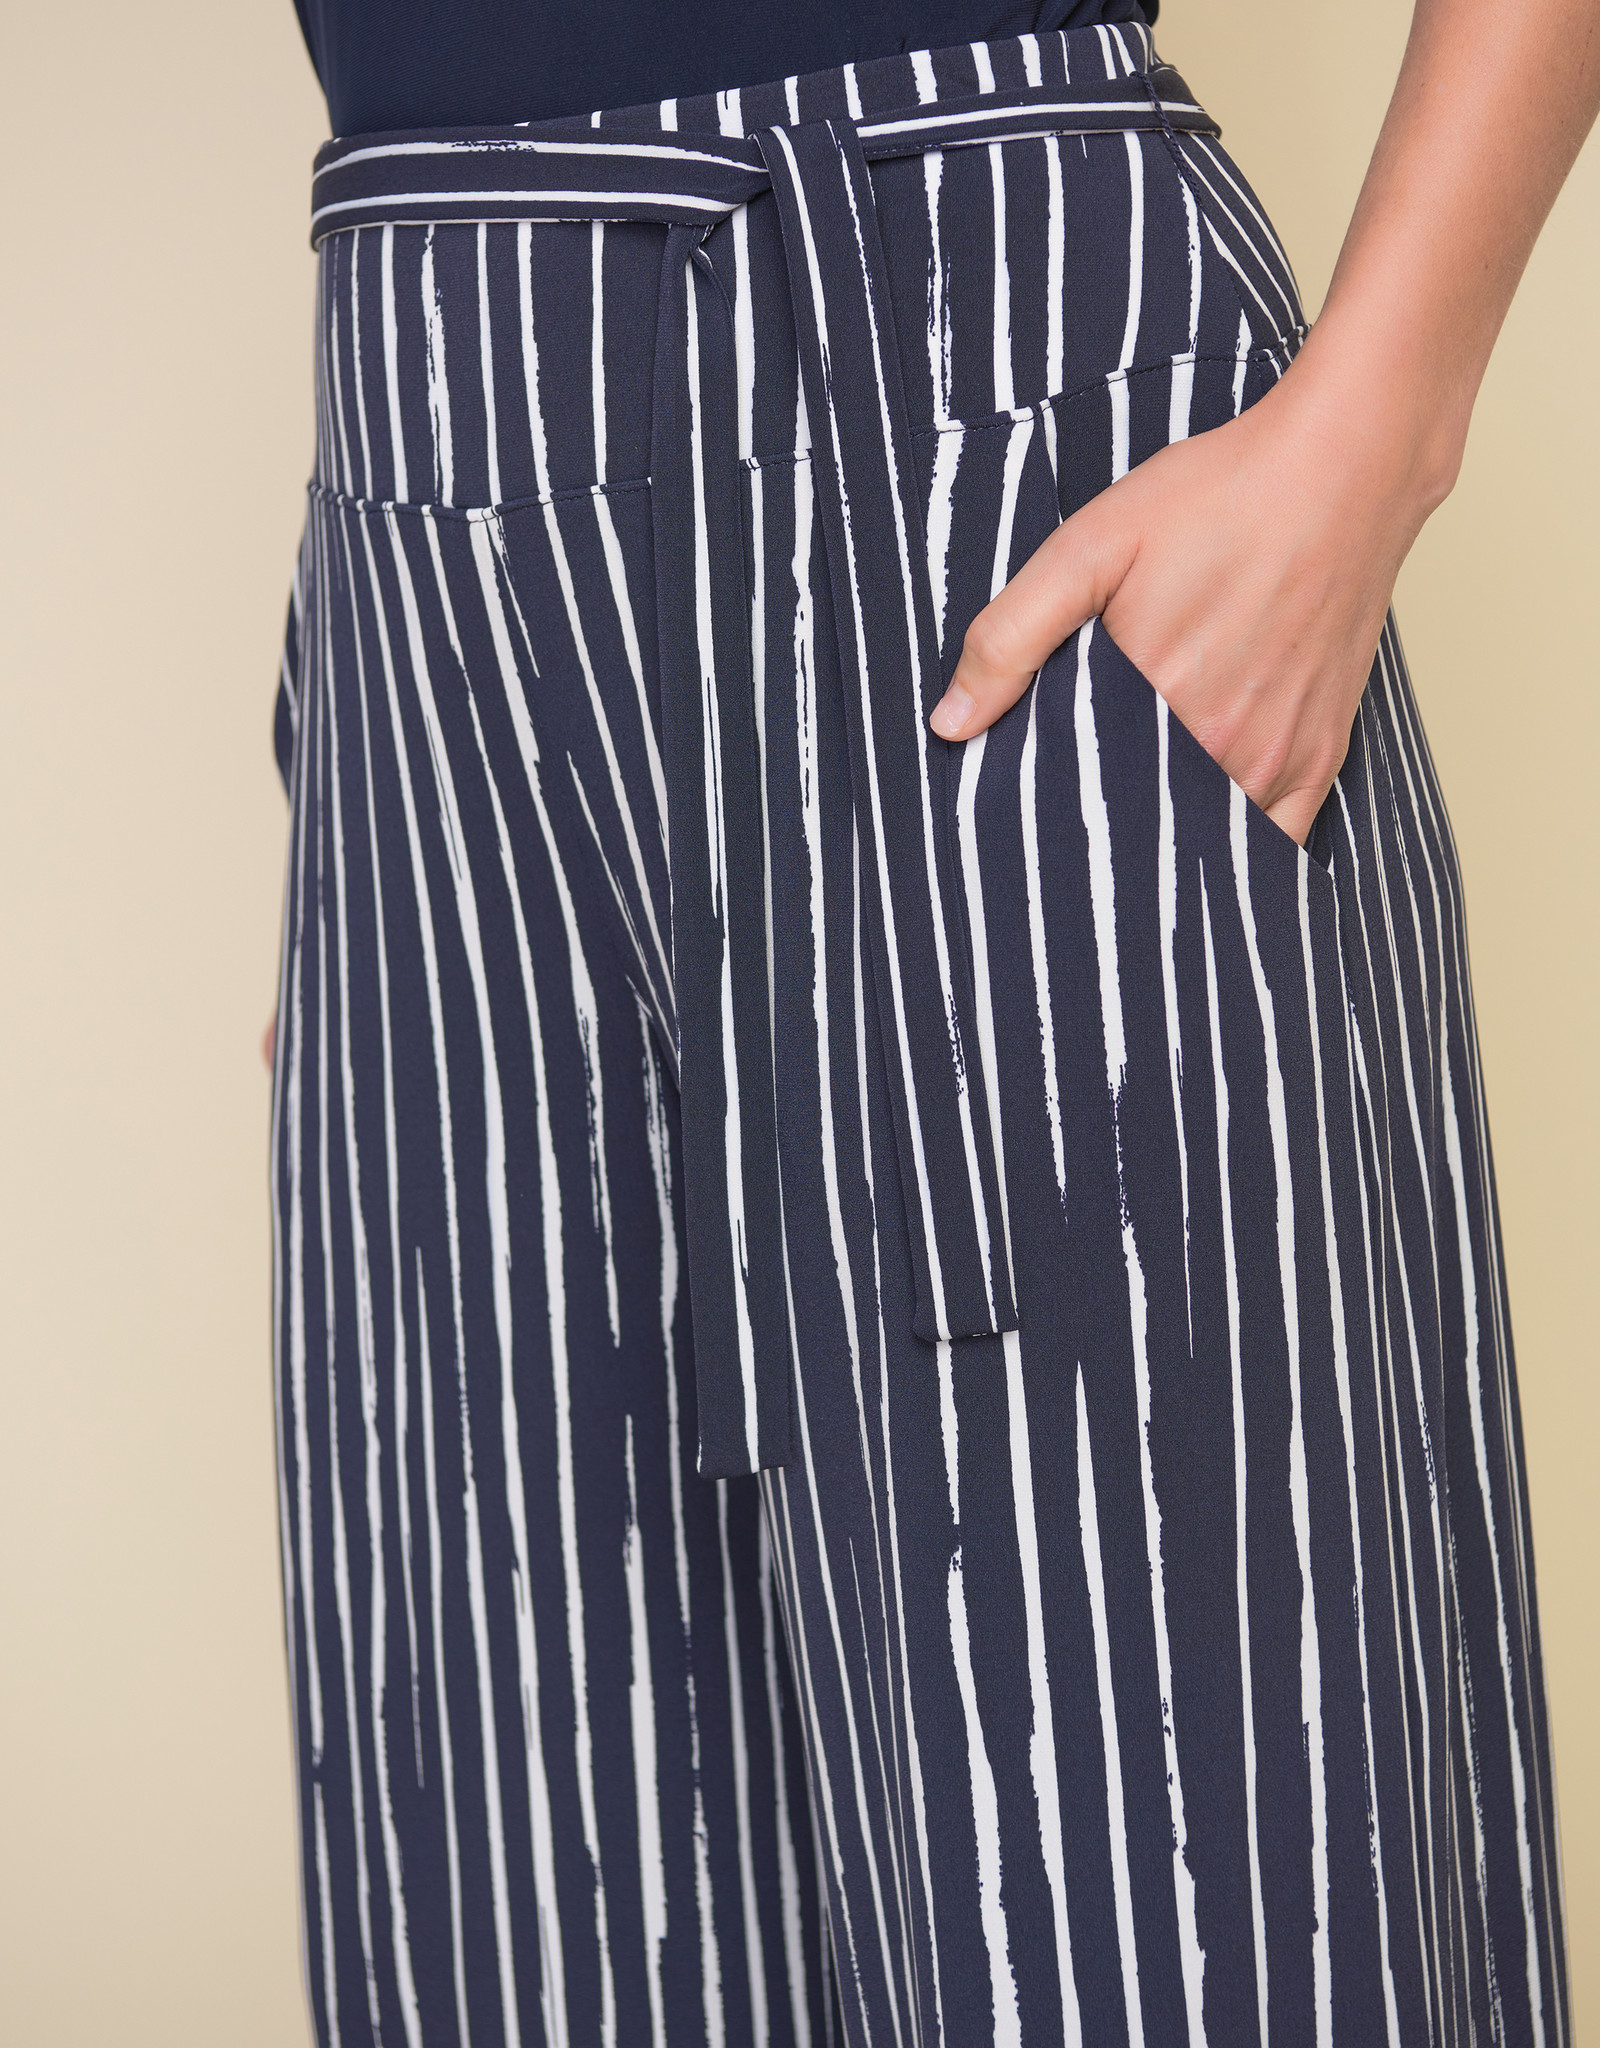 Joseph Ribkoff Joseph Ribkoff 212102 Pull On Cropped Pant with Pockets and a Belt